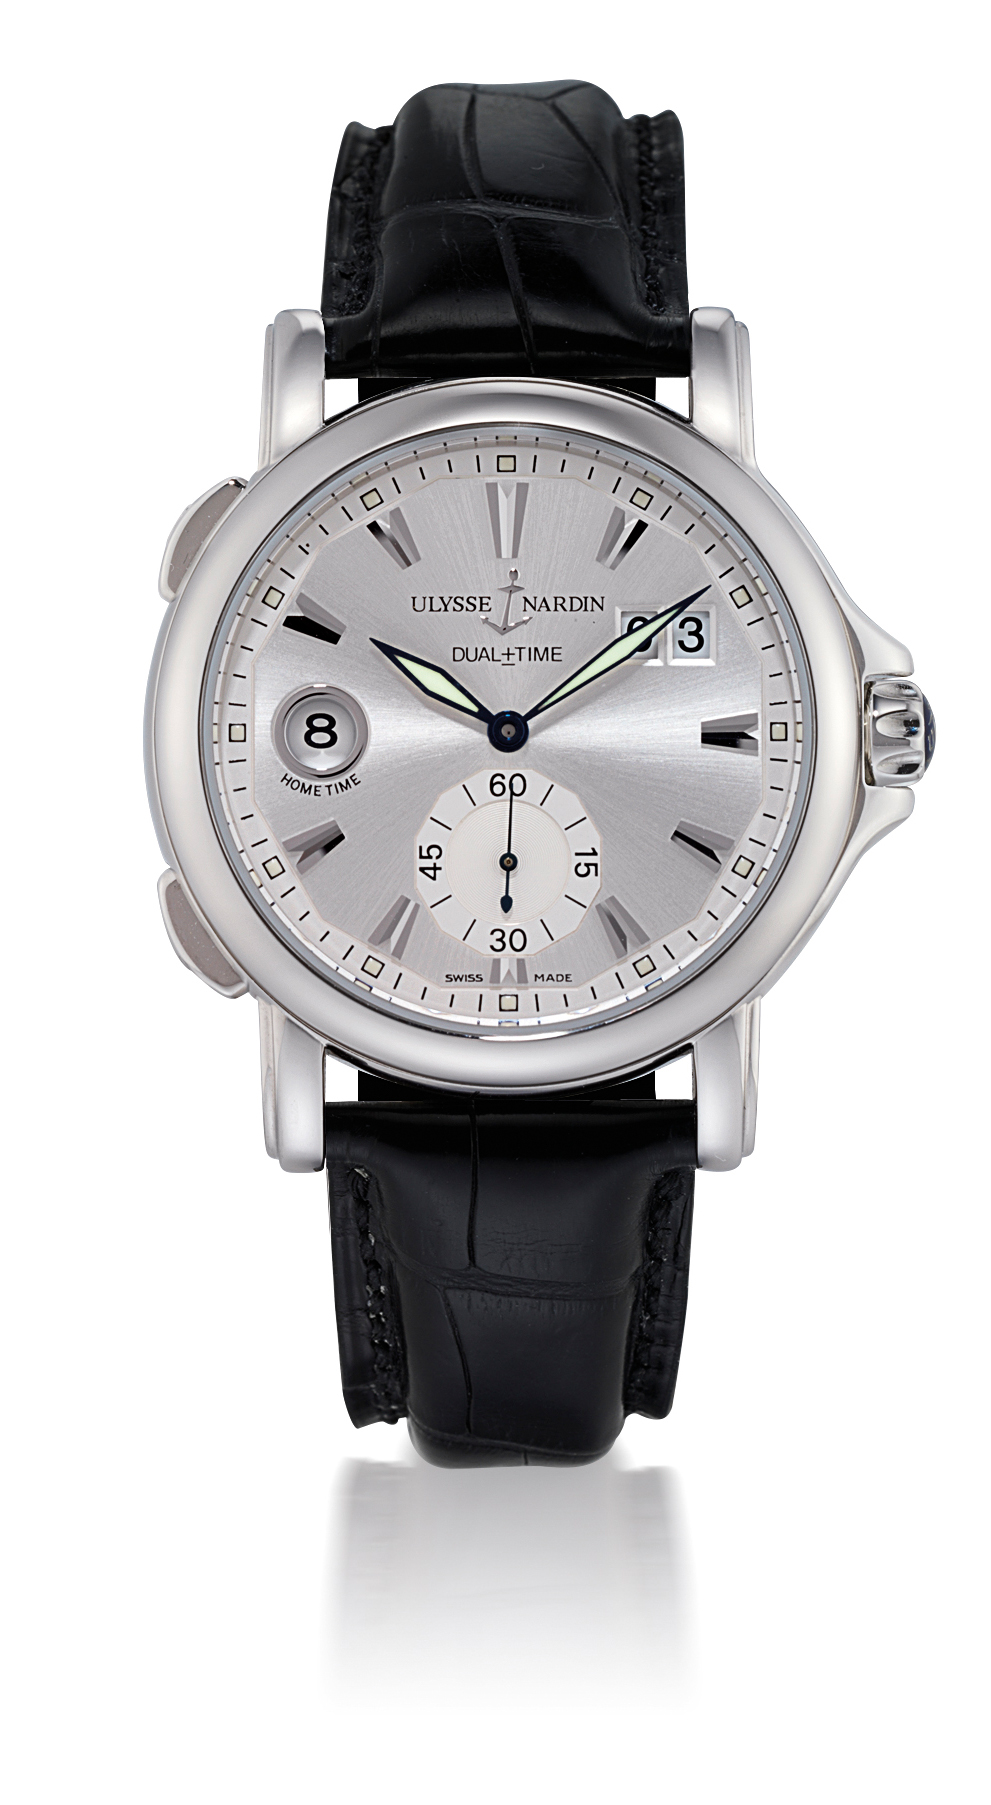 ULYSSE NARDIN, GMT BIG DATE  STAINLESS STEEL AUTOMATIC DUAL TIME ZONE WRISTWATCH WITH DATE DISPLAY